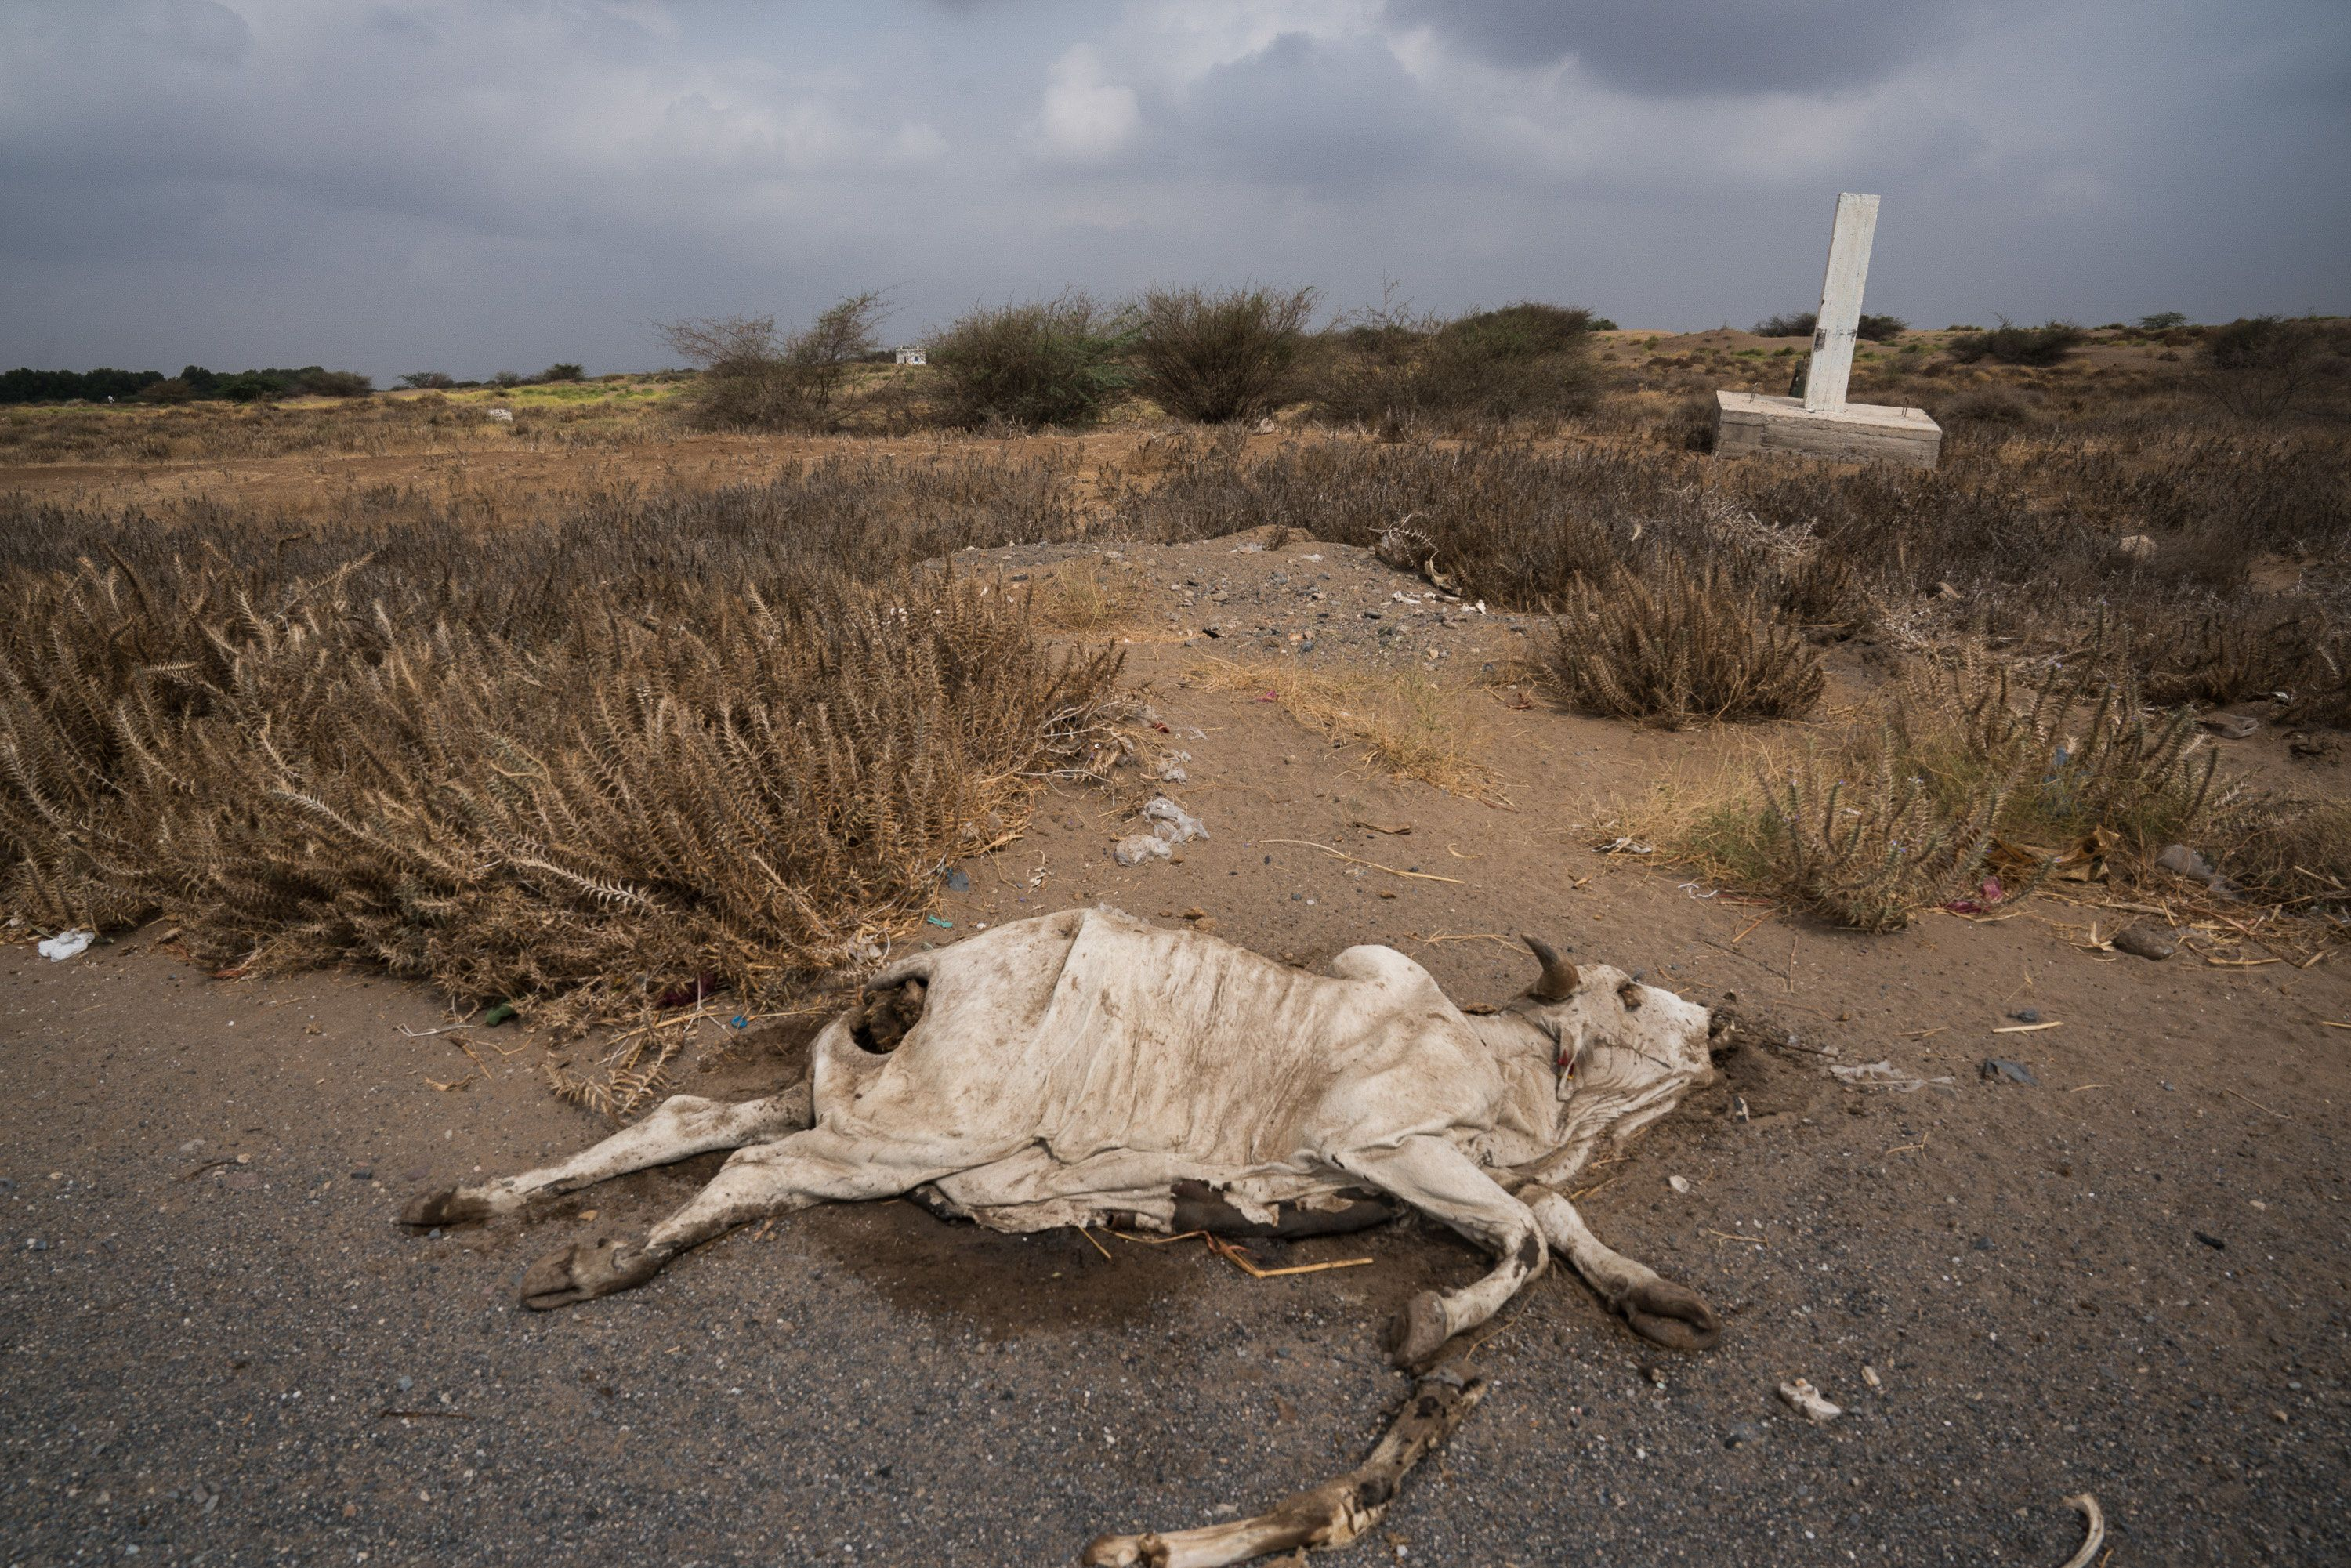 AL HUDAYDAH, YEMEN - APRIL 19, 2017. A dead cow lies beside the main road leading out of the port town of Al Hudaydah. Locals tend to avoid dead carcasses as some have been known to be filled with Improvised Explosive Devices (IED). (Photo by Giles Clarke, UN OCHA / Getty Images)